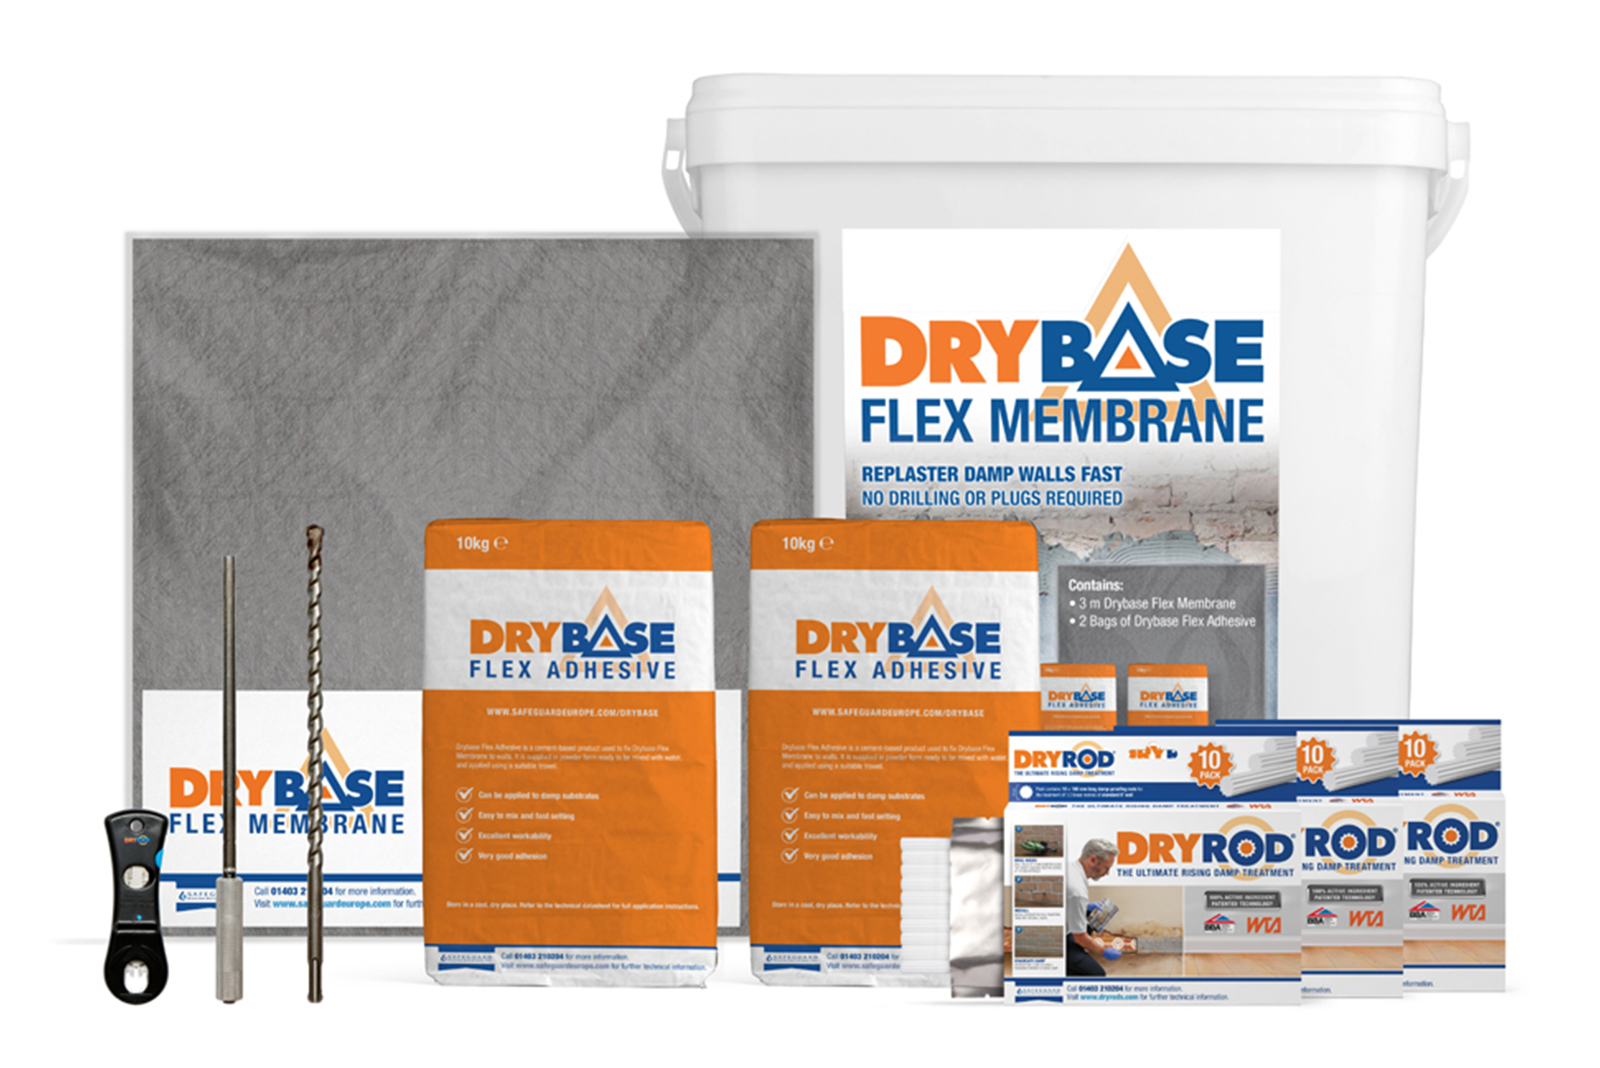 WIN a Safeguard Drybase Kit